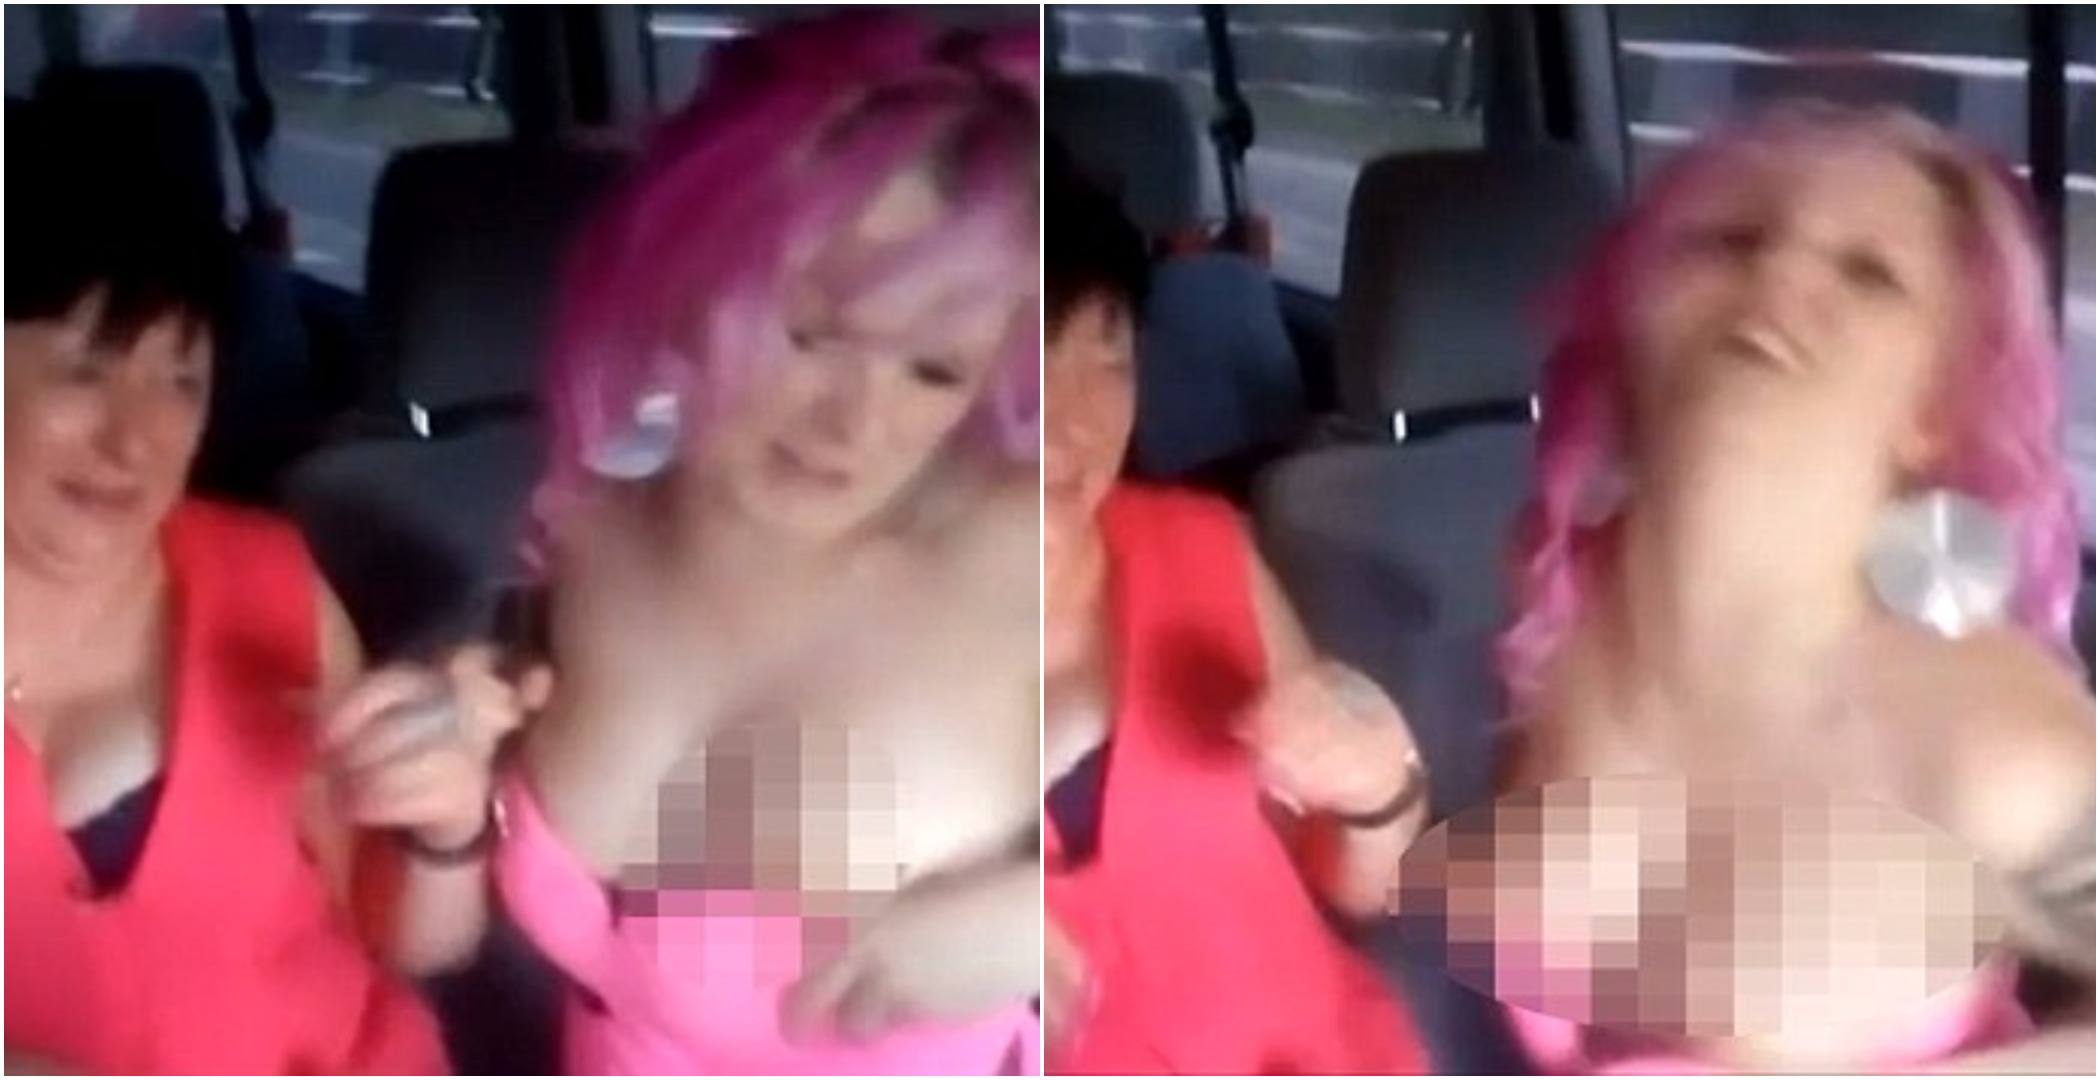 WATCH: Czech Come Dine With Me contestant flashes her boobs in wild taxi ride after dinner party